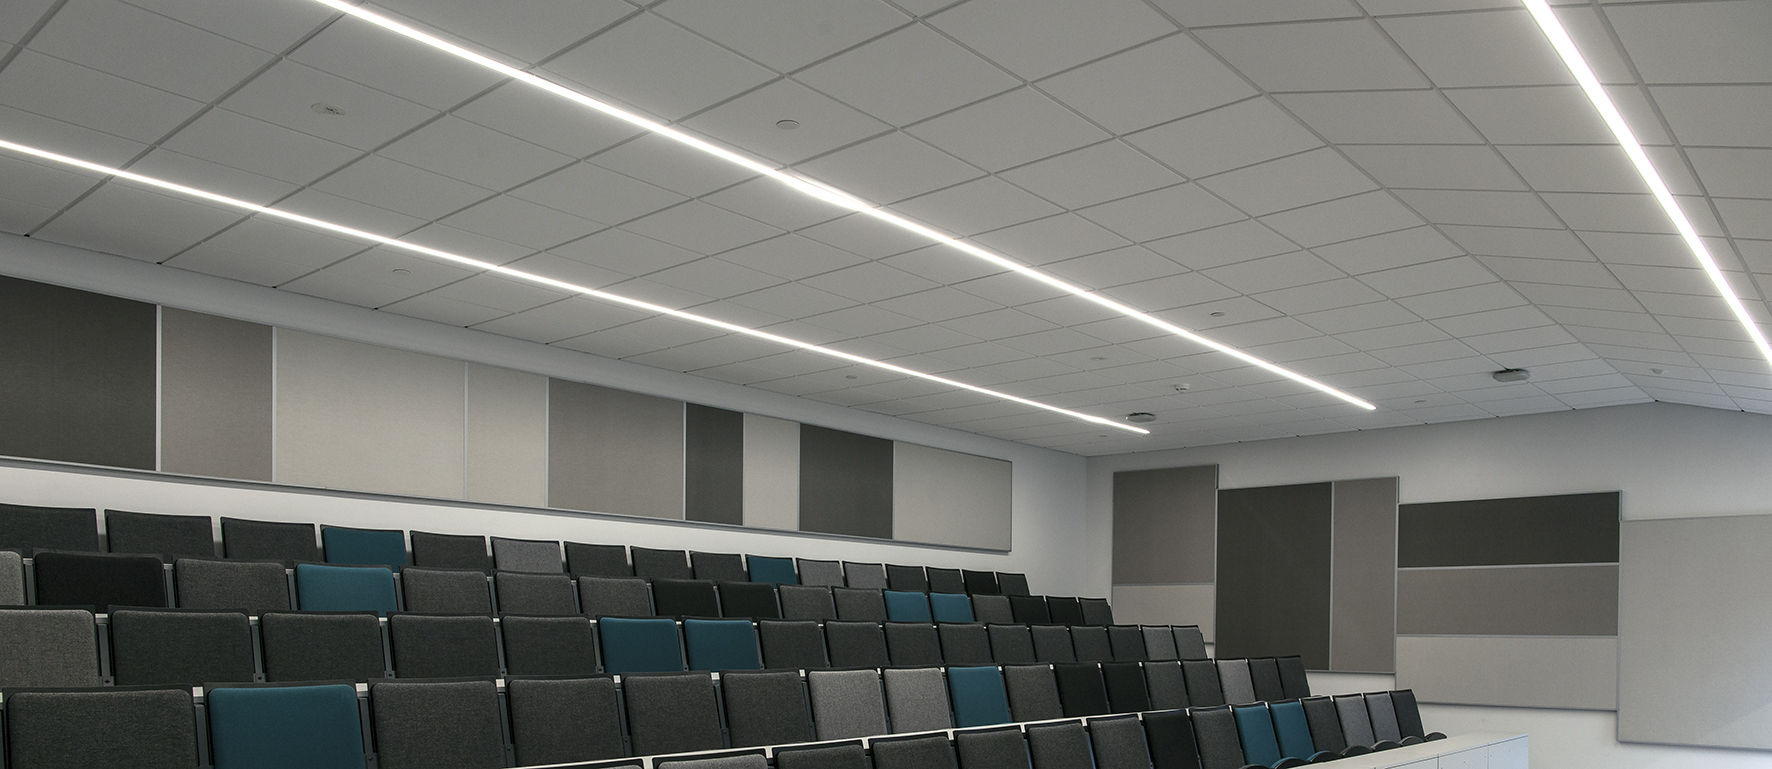 Connectable lighting fixtures